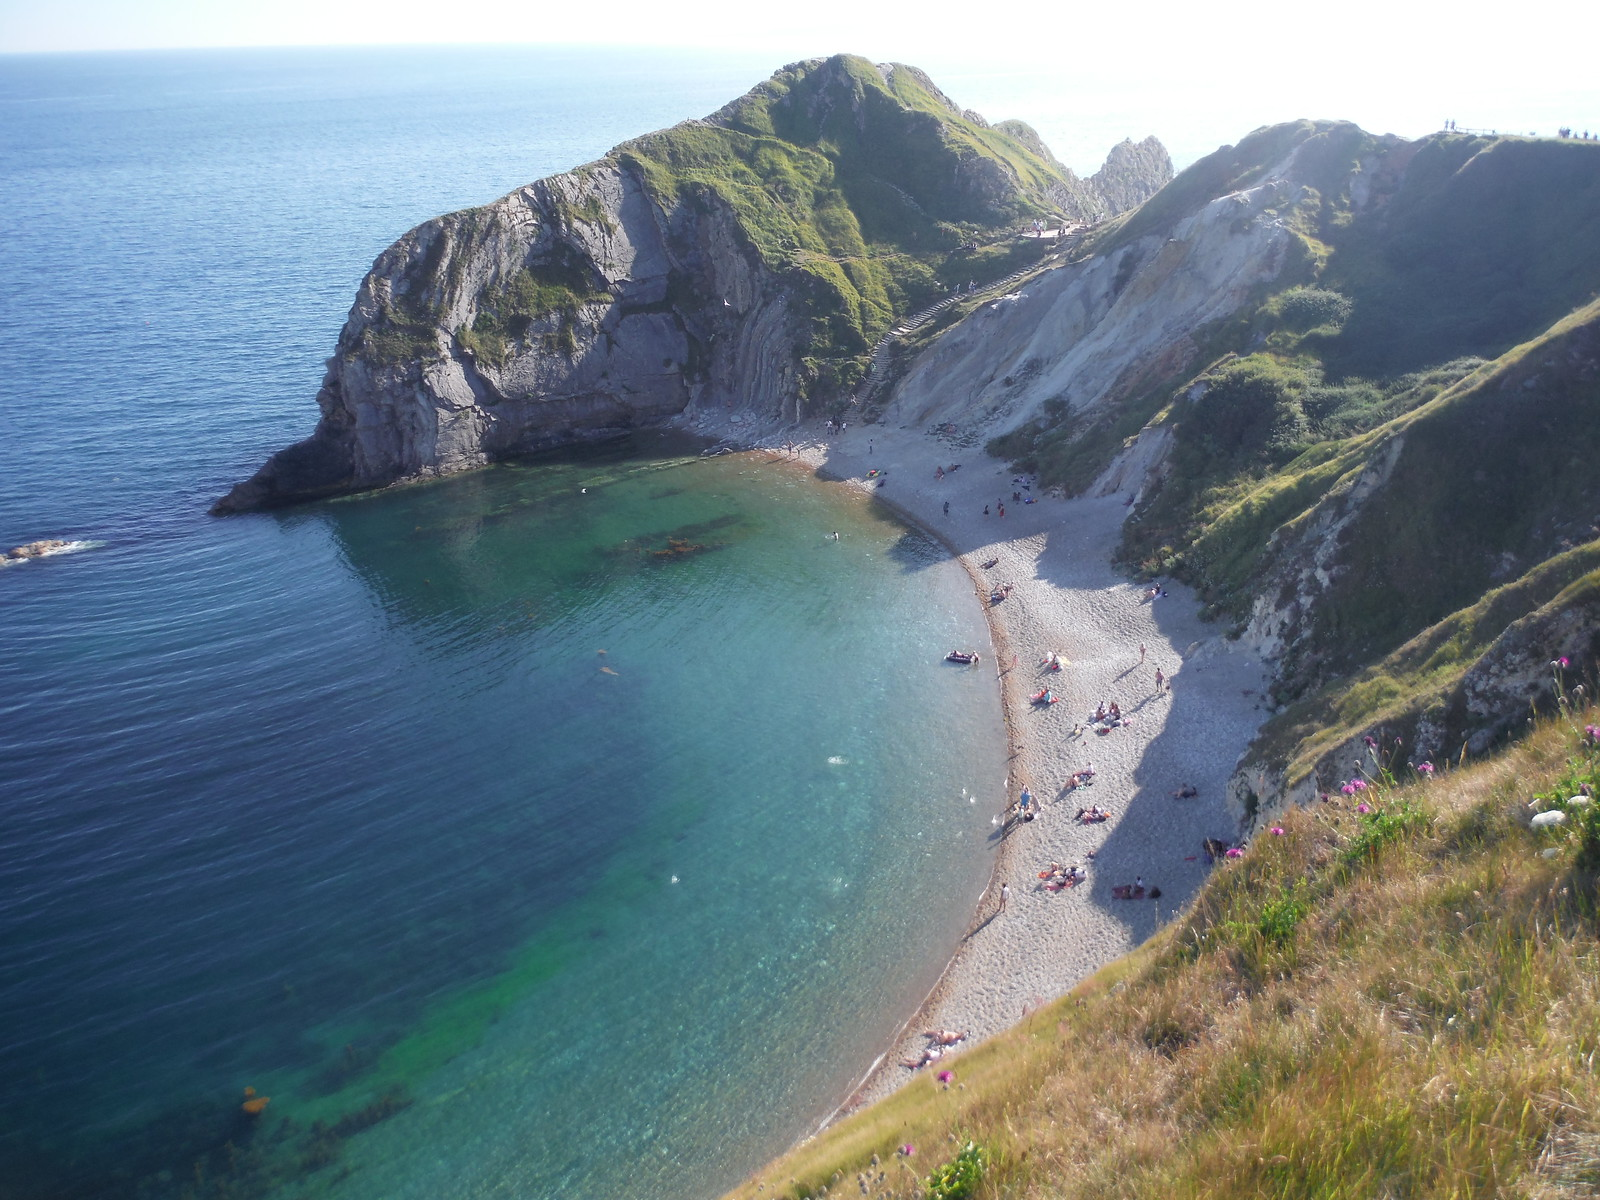 Man o' War Bay SWC Walk 54 - Lulworth Cove Circular (via Tyneham and Durdle Door)